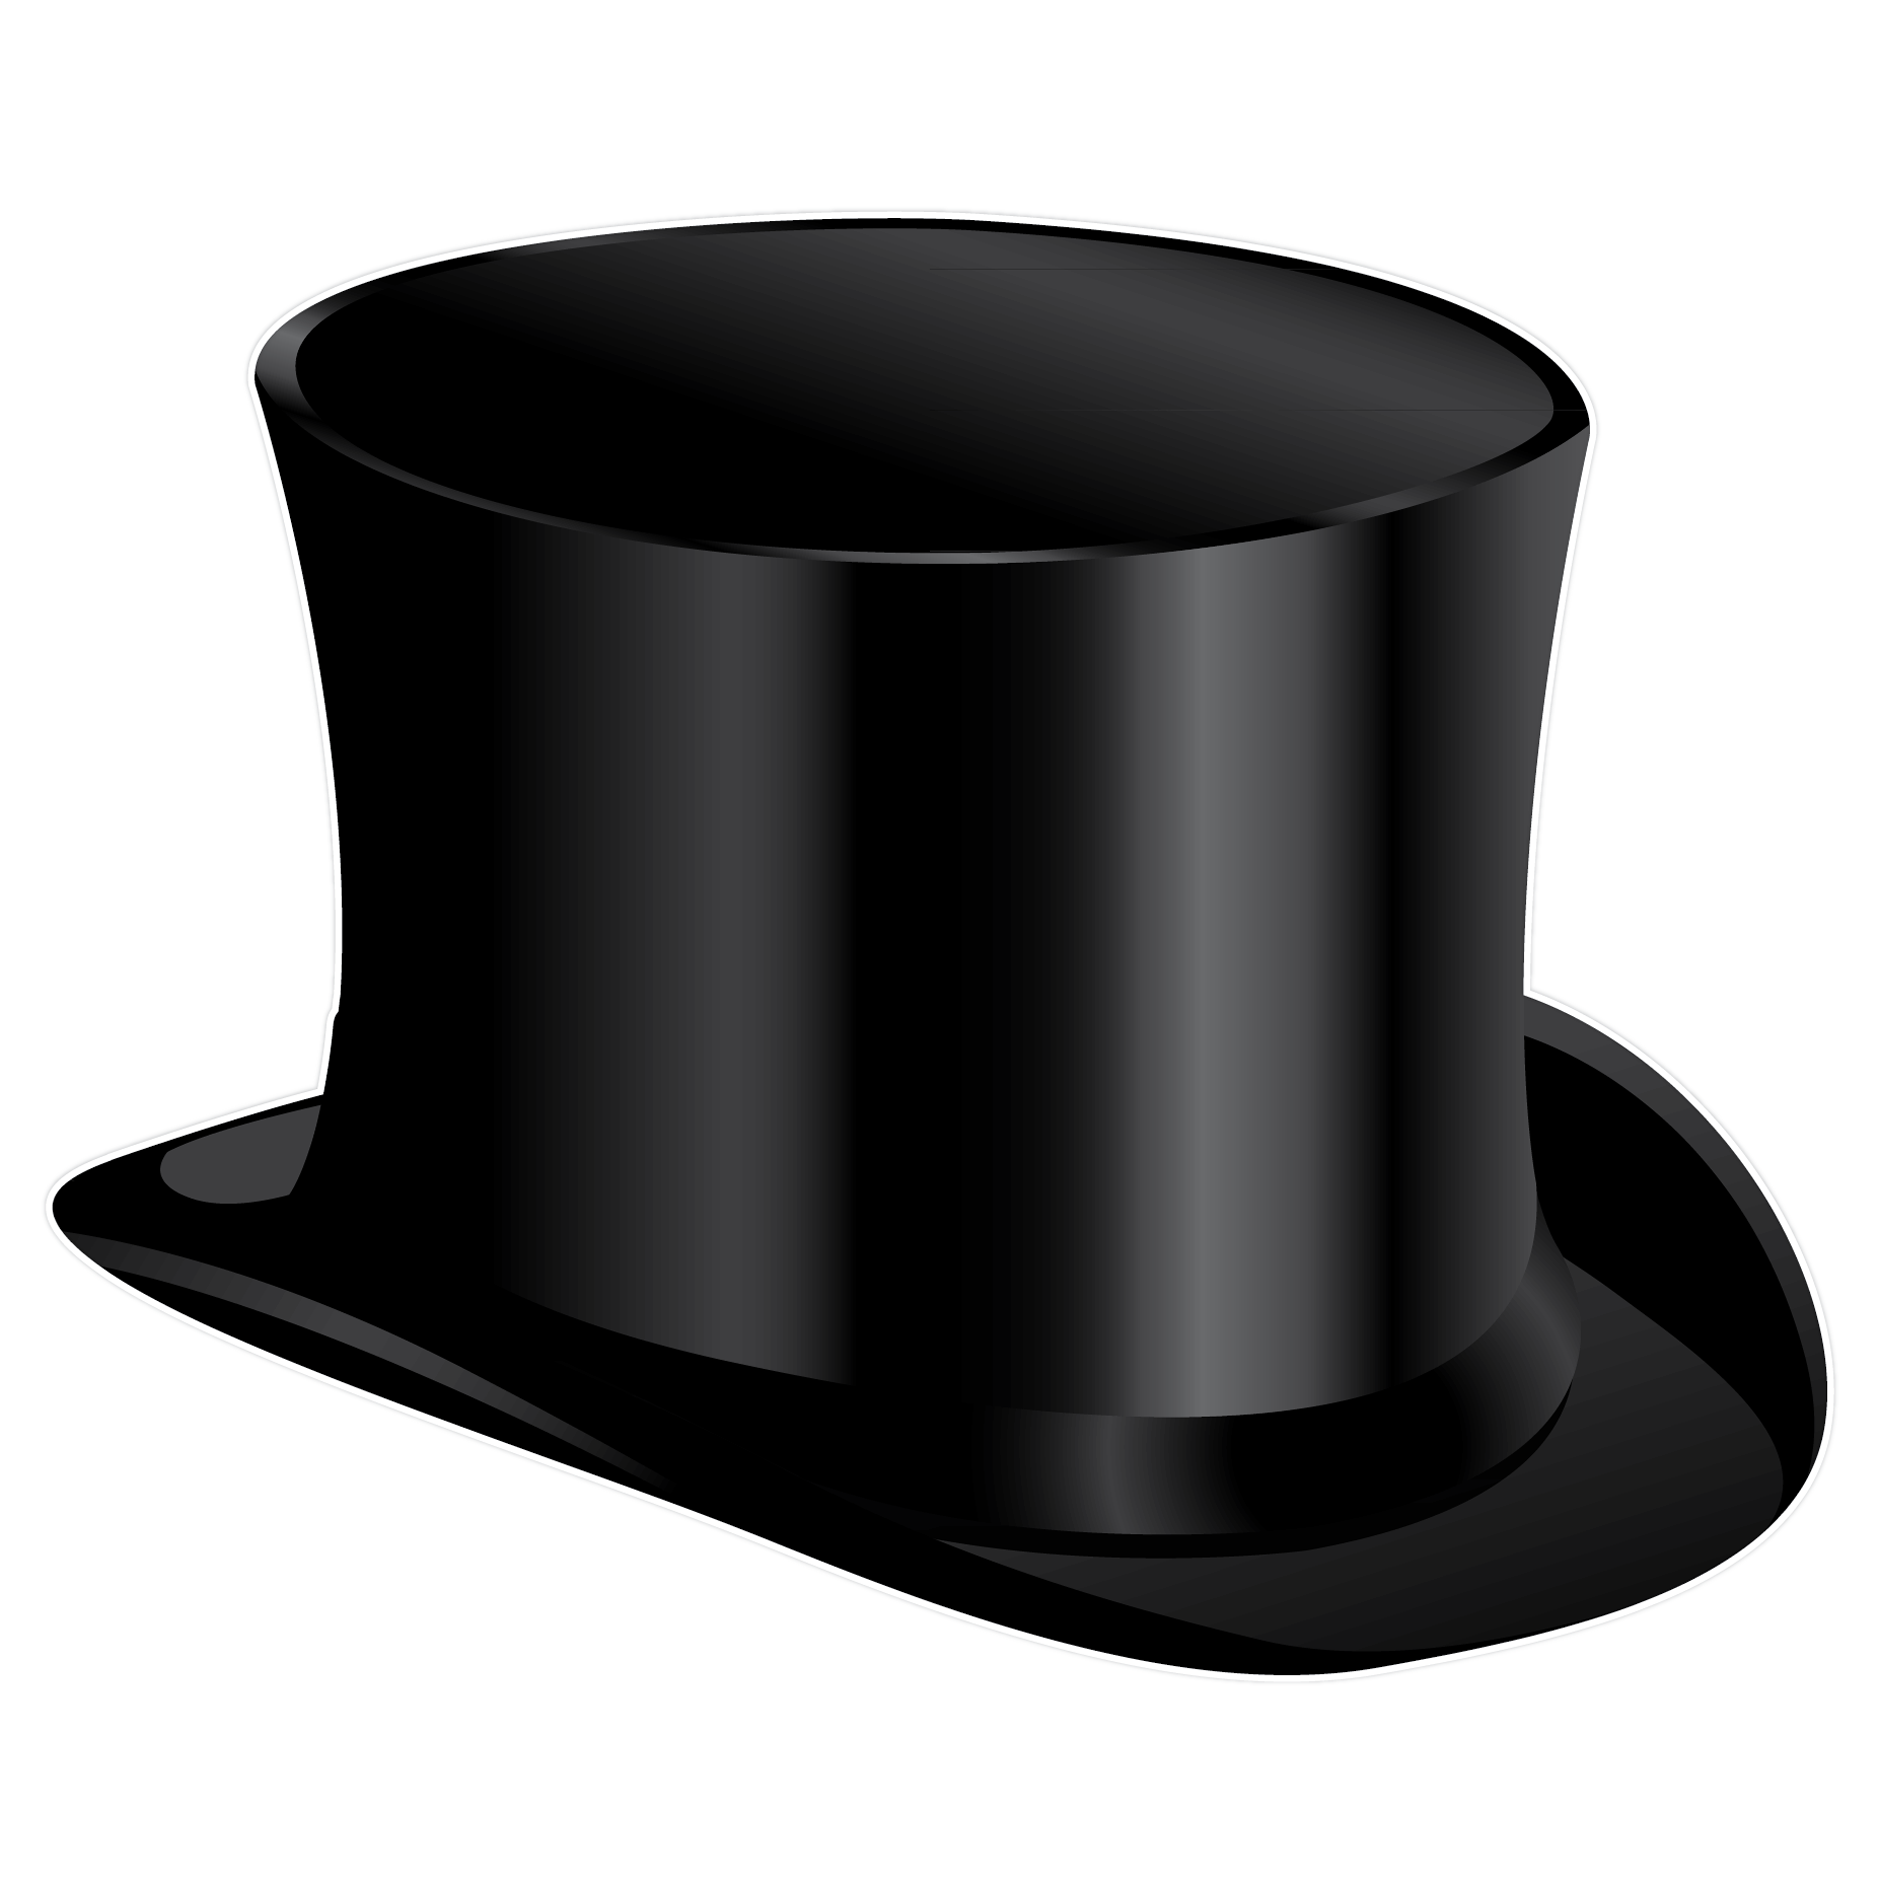 Top Hat Clipart - Clipart Kid